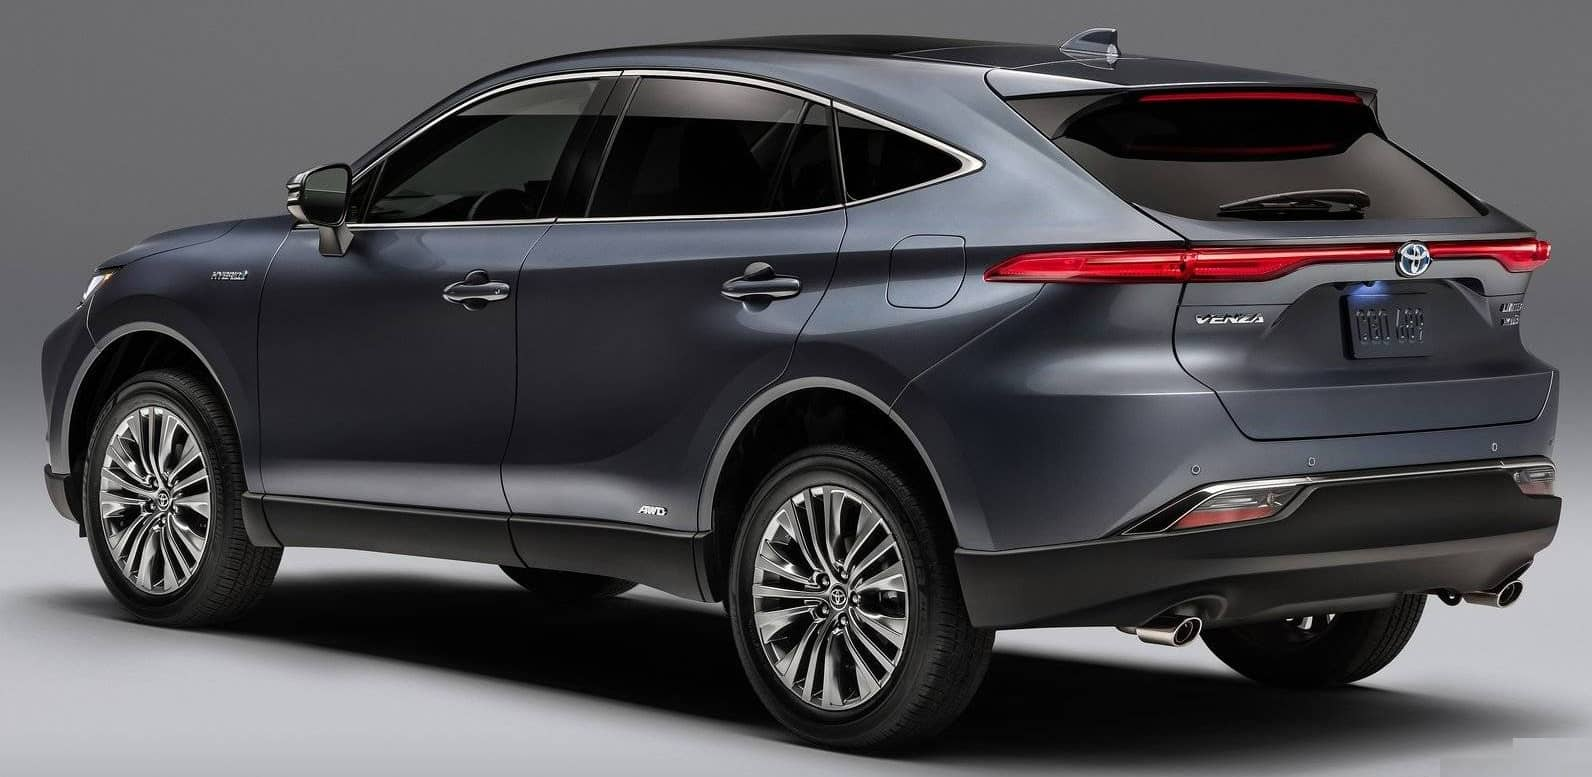 THE RETURN OF THE VENZA